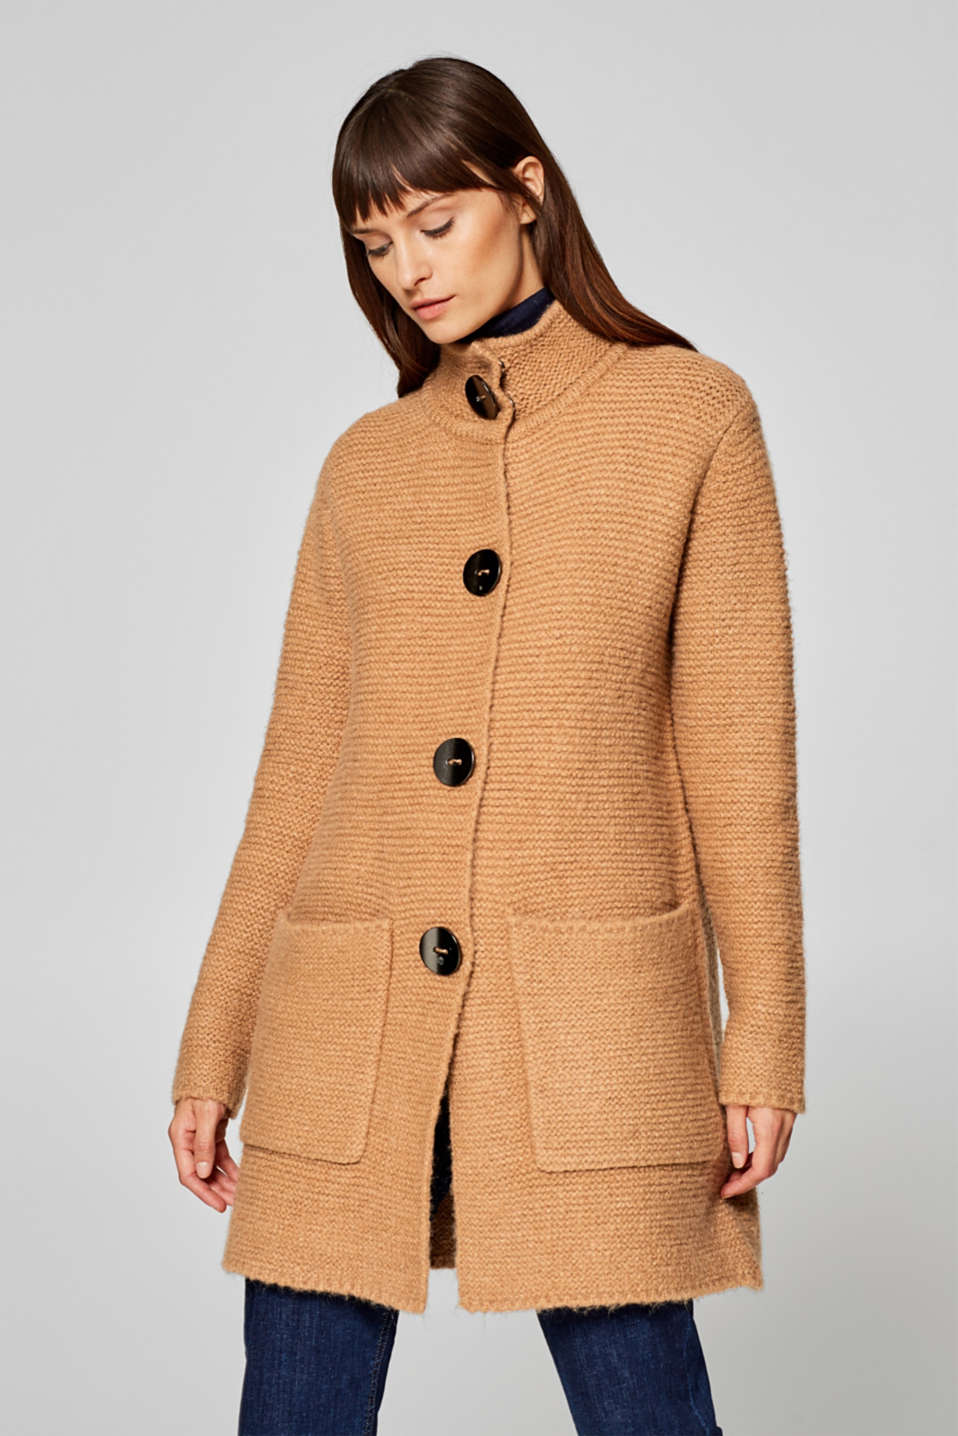 Esprit - Wool blend: long cardigan in a two-tone look